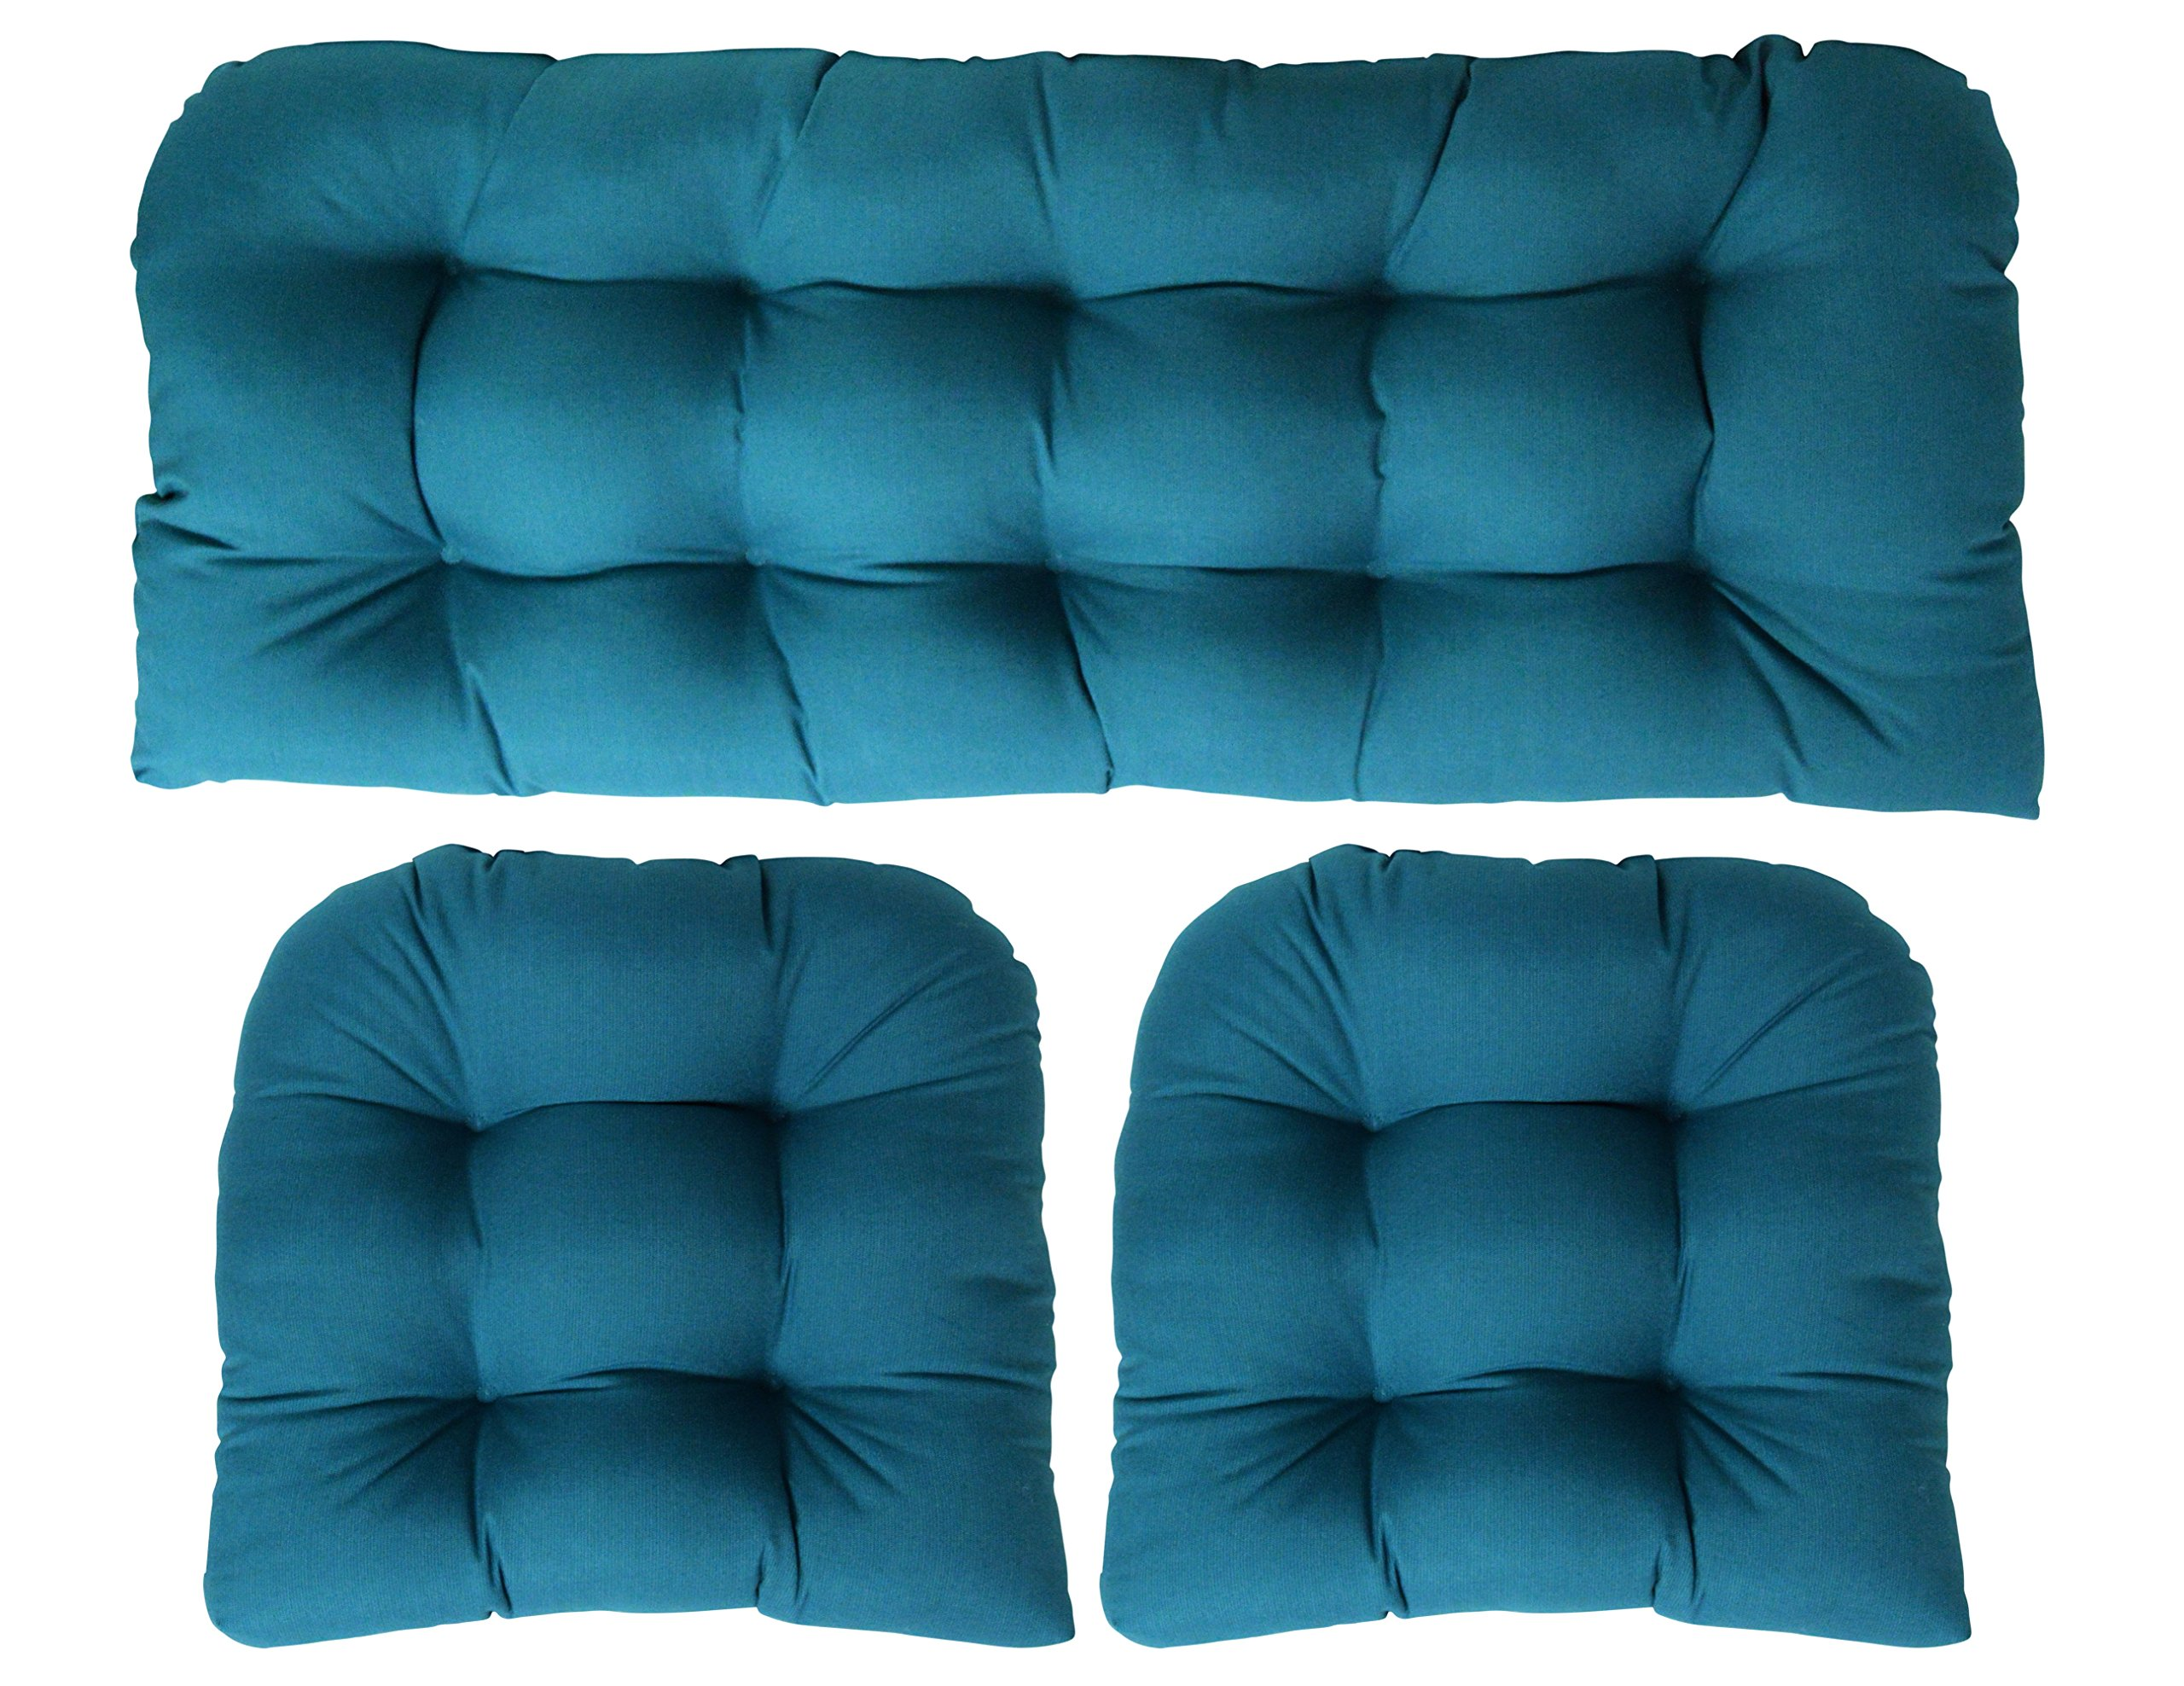 3 Piece Wicker Cushion Set - Indoor / Outdoor Wicker Loveseat Settee & 2 Matching Chair Cushions - Sunbrella Spectrum Peacock Teal Blue (1132)